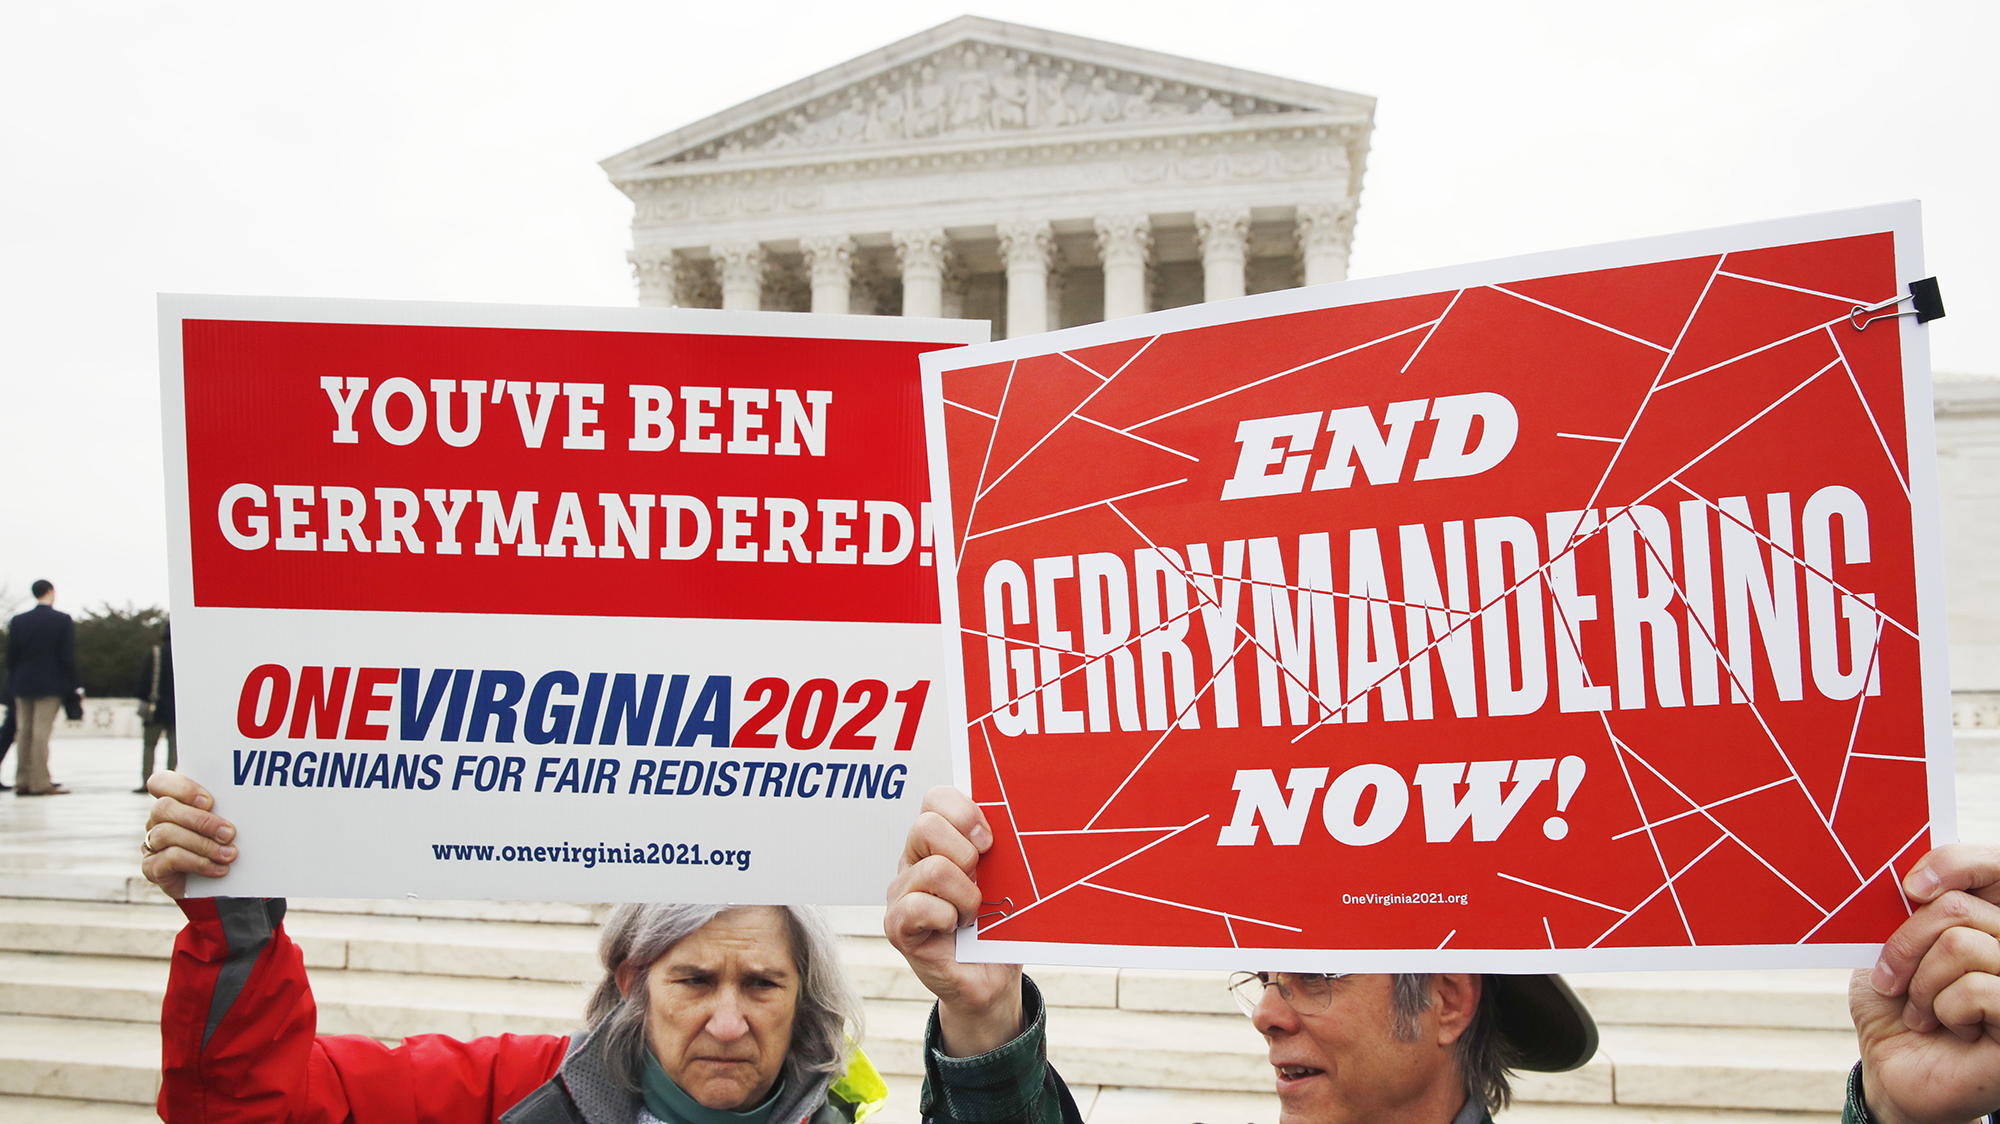 Supreme Court rejects Republican bid to block Maryland electoral district